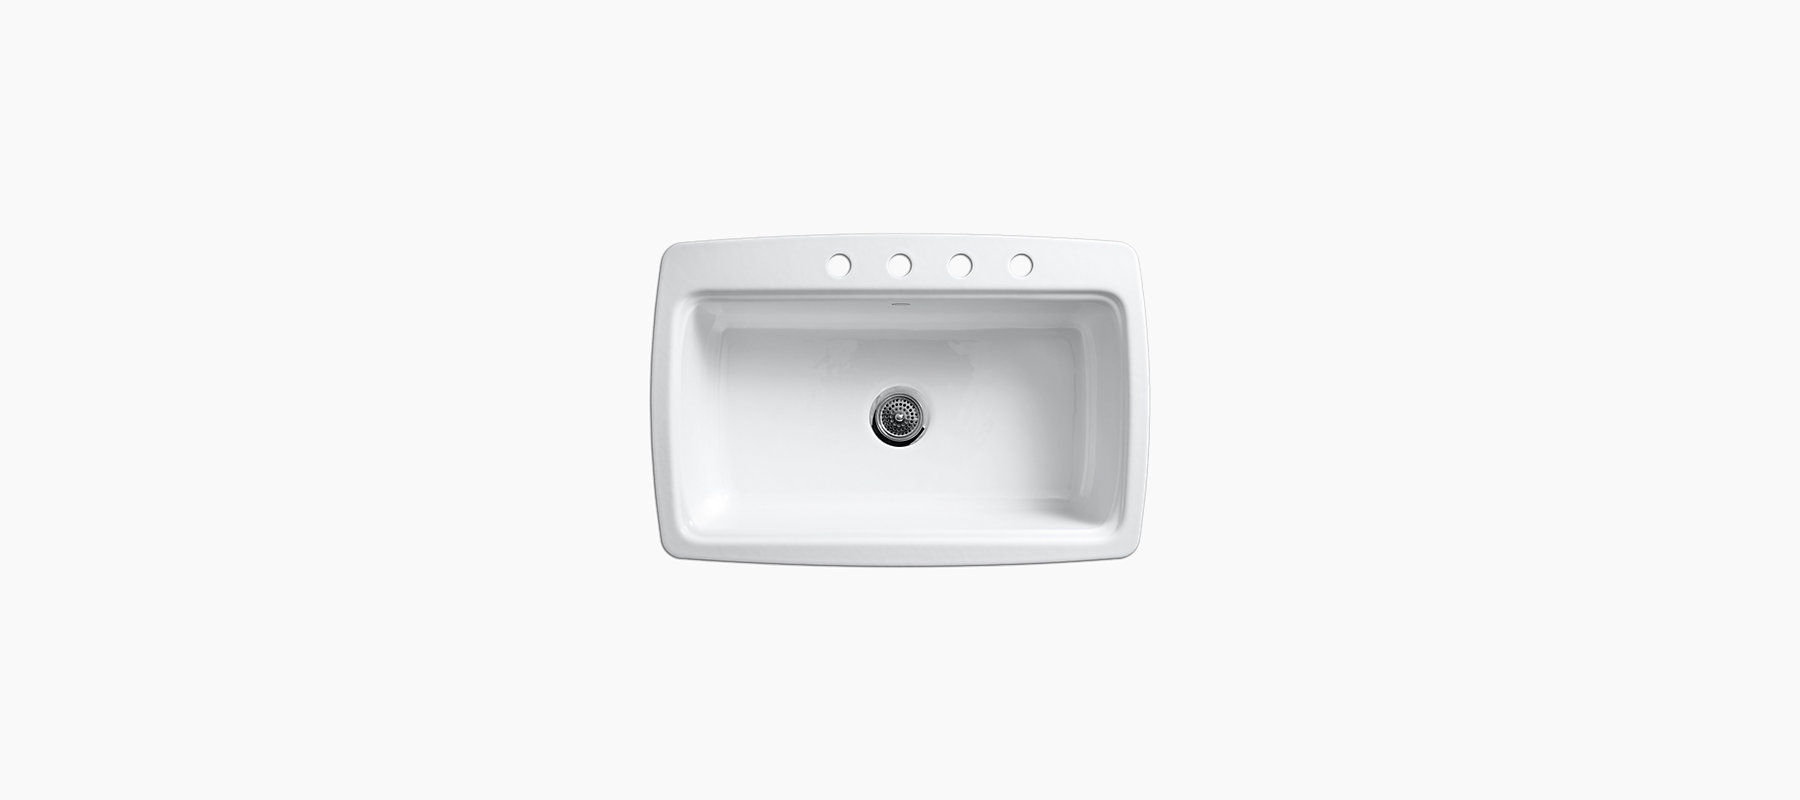 Tile In Kitchen Sink Cape dory tile in kitchen sink with four faucet holes k 5864 4 discontinued workwithnaturefo